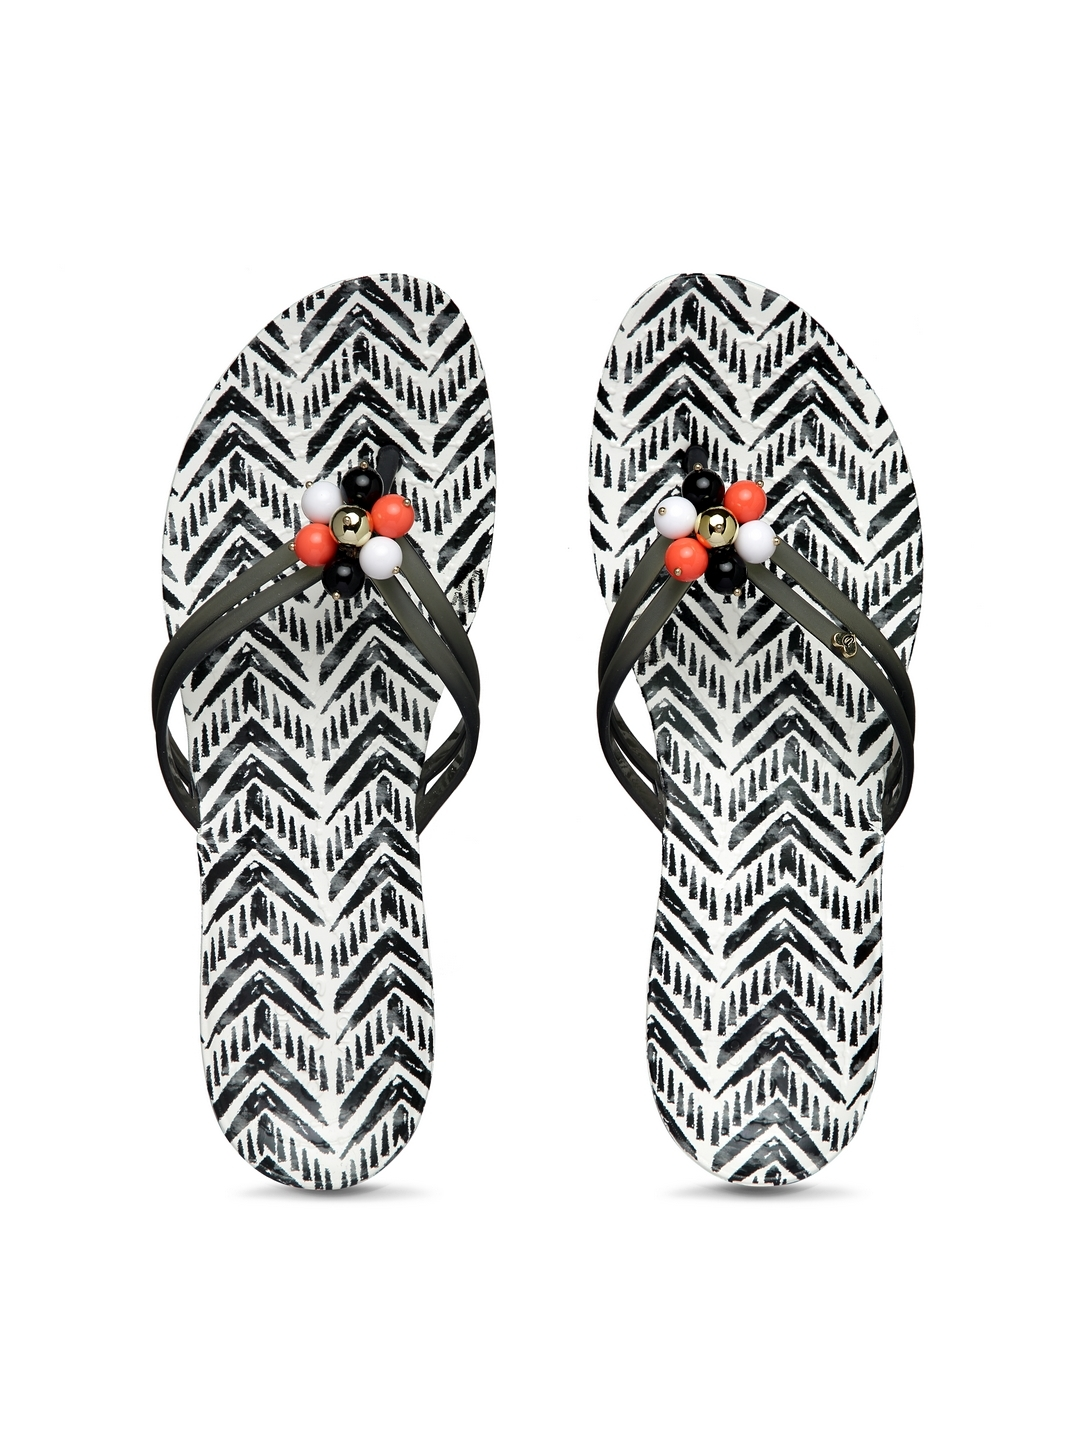 501bf4fb021 Buy Crocs Women Black   White Printed Thong Flip Flops - Flip Flops ...